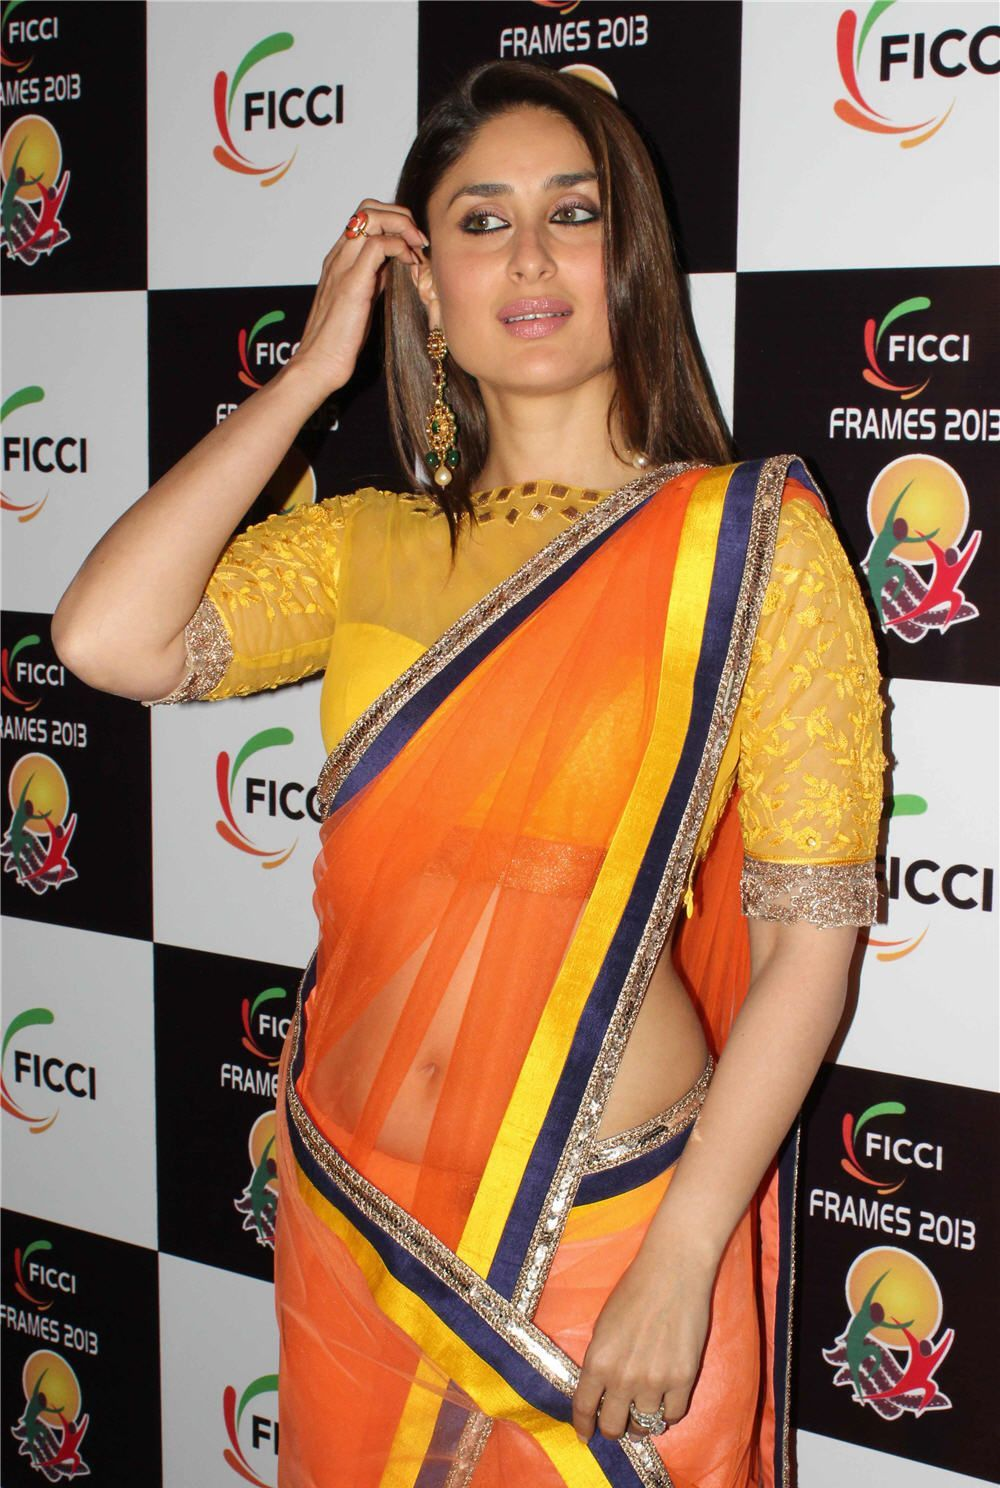 Decorative and Glamorous Kareena latest pic in orange saree hq photo gallery